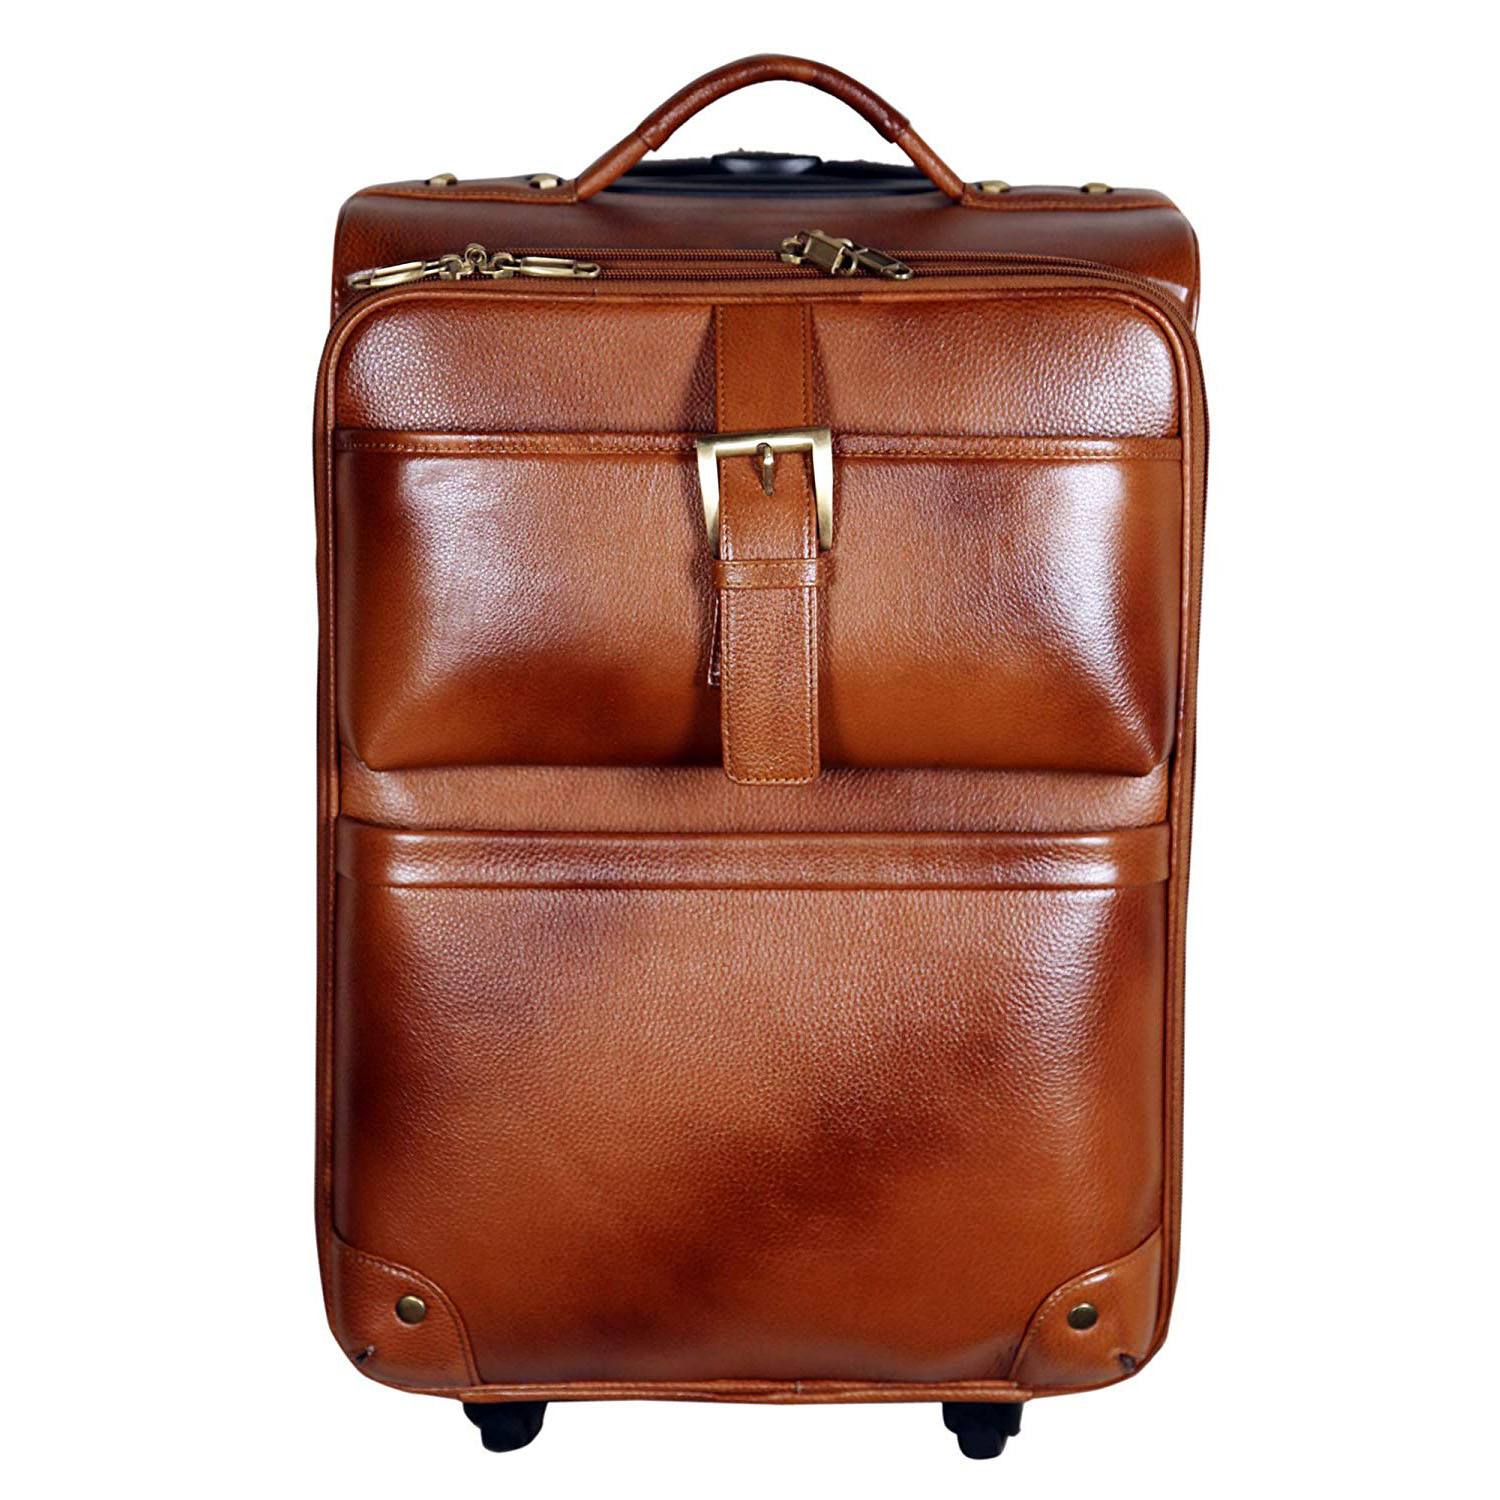 46 L Cabin Size Leather Softsided Travelling Bag (Tan)